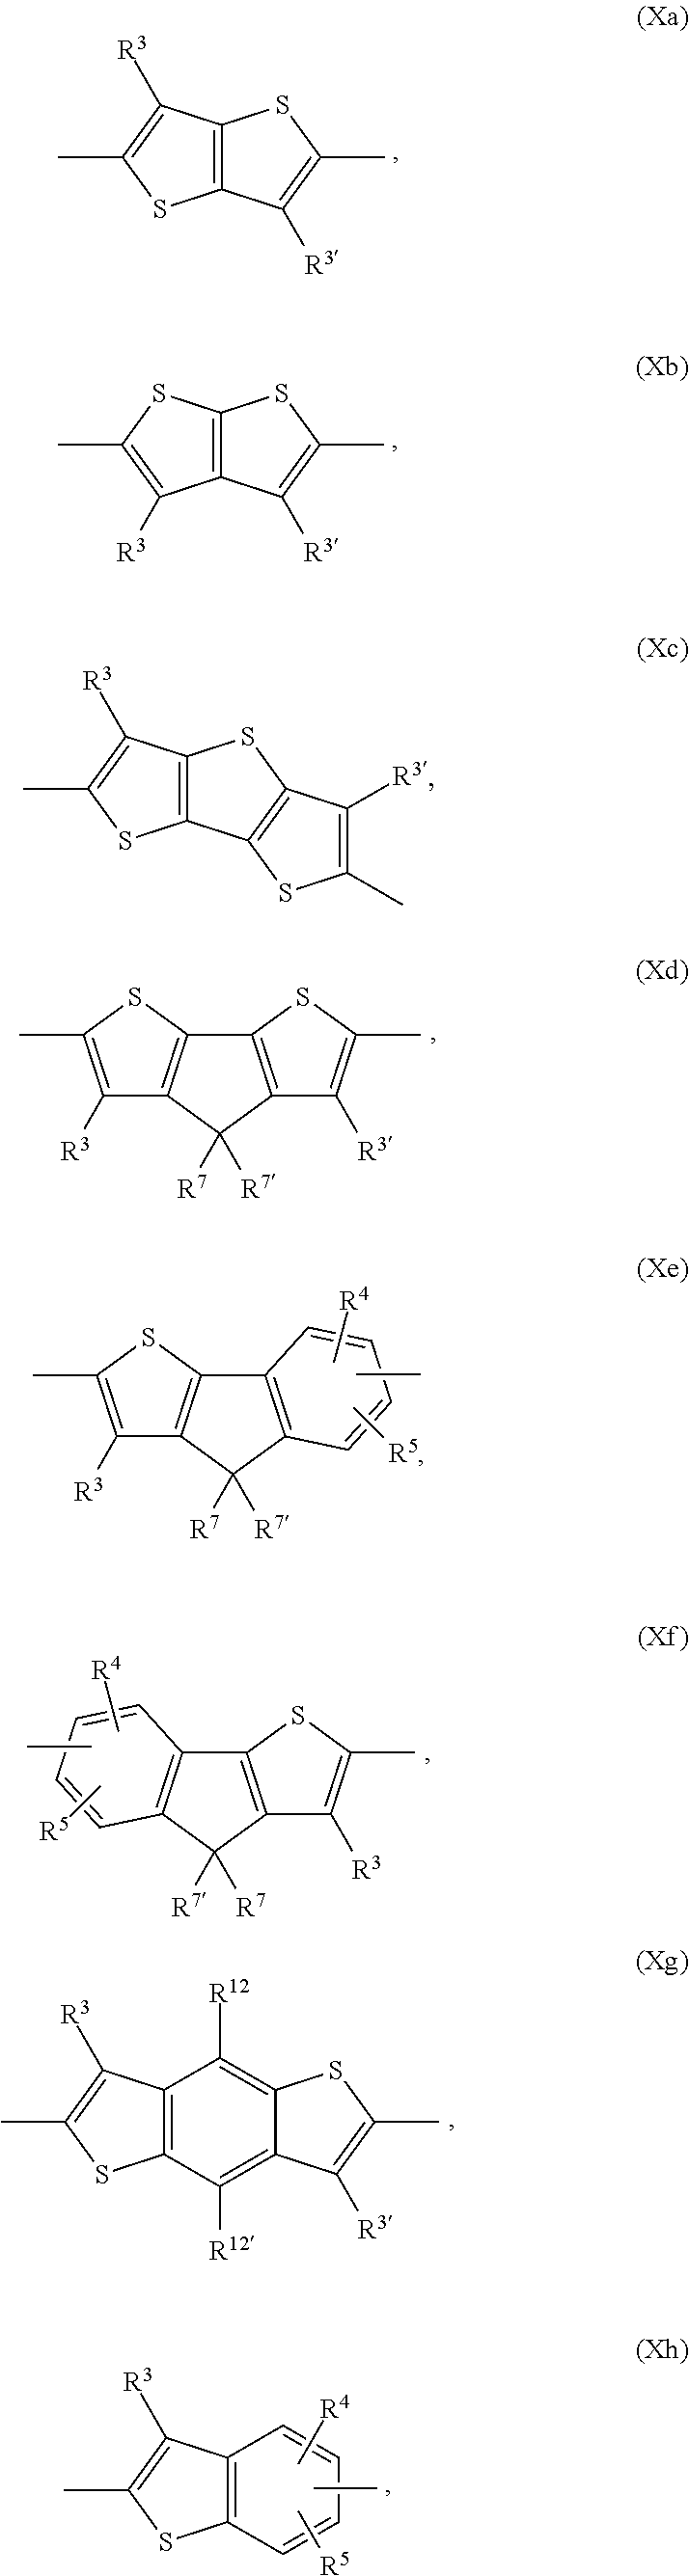 US9478745B2 - Diketopyrrolopyrrole polymers for use in